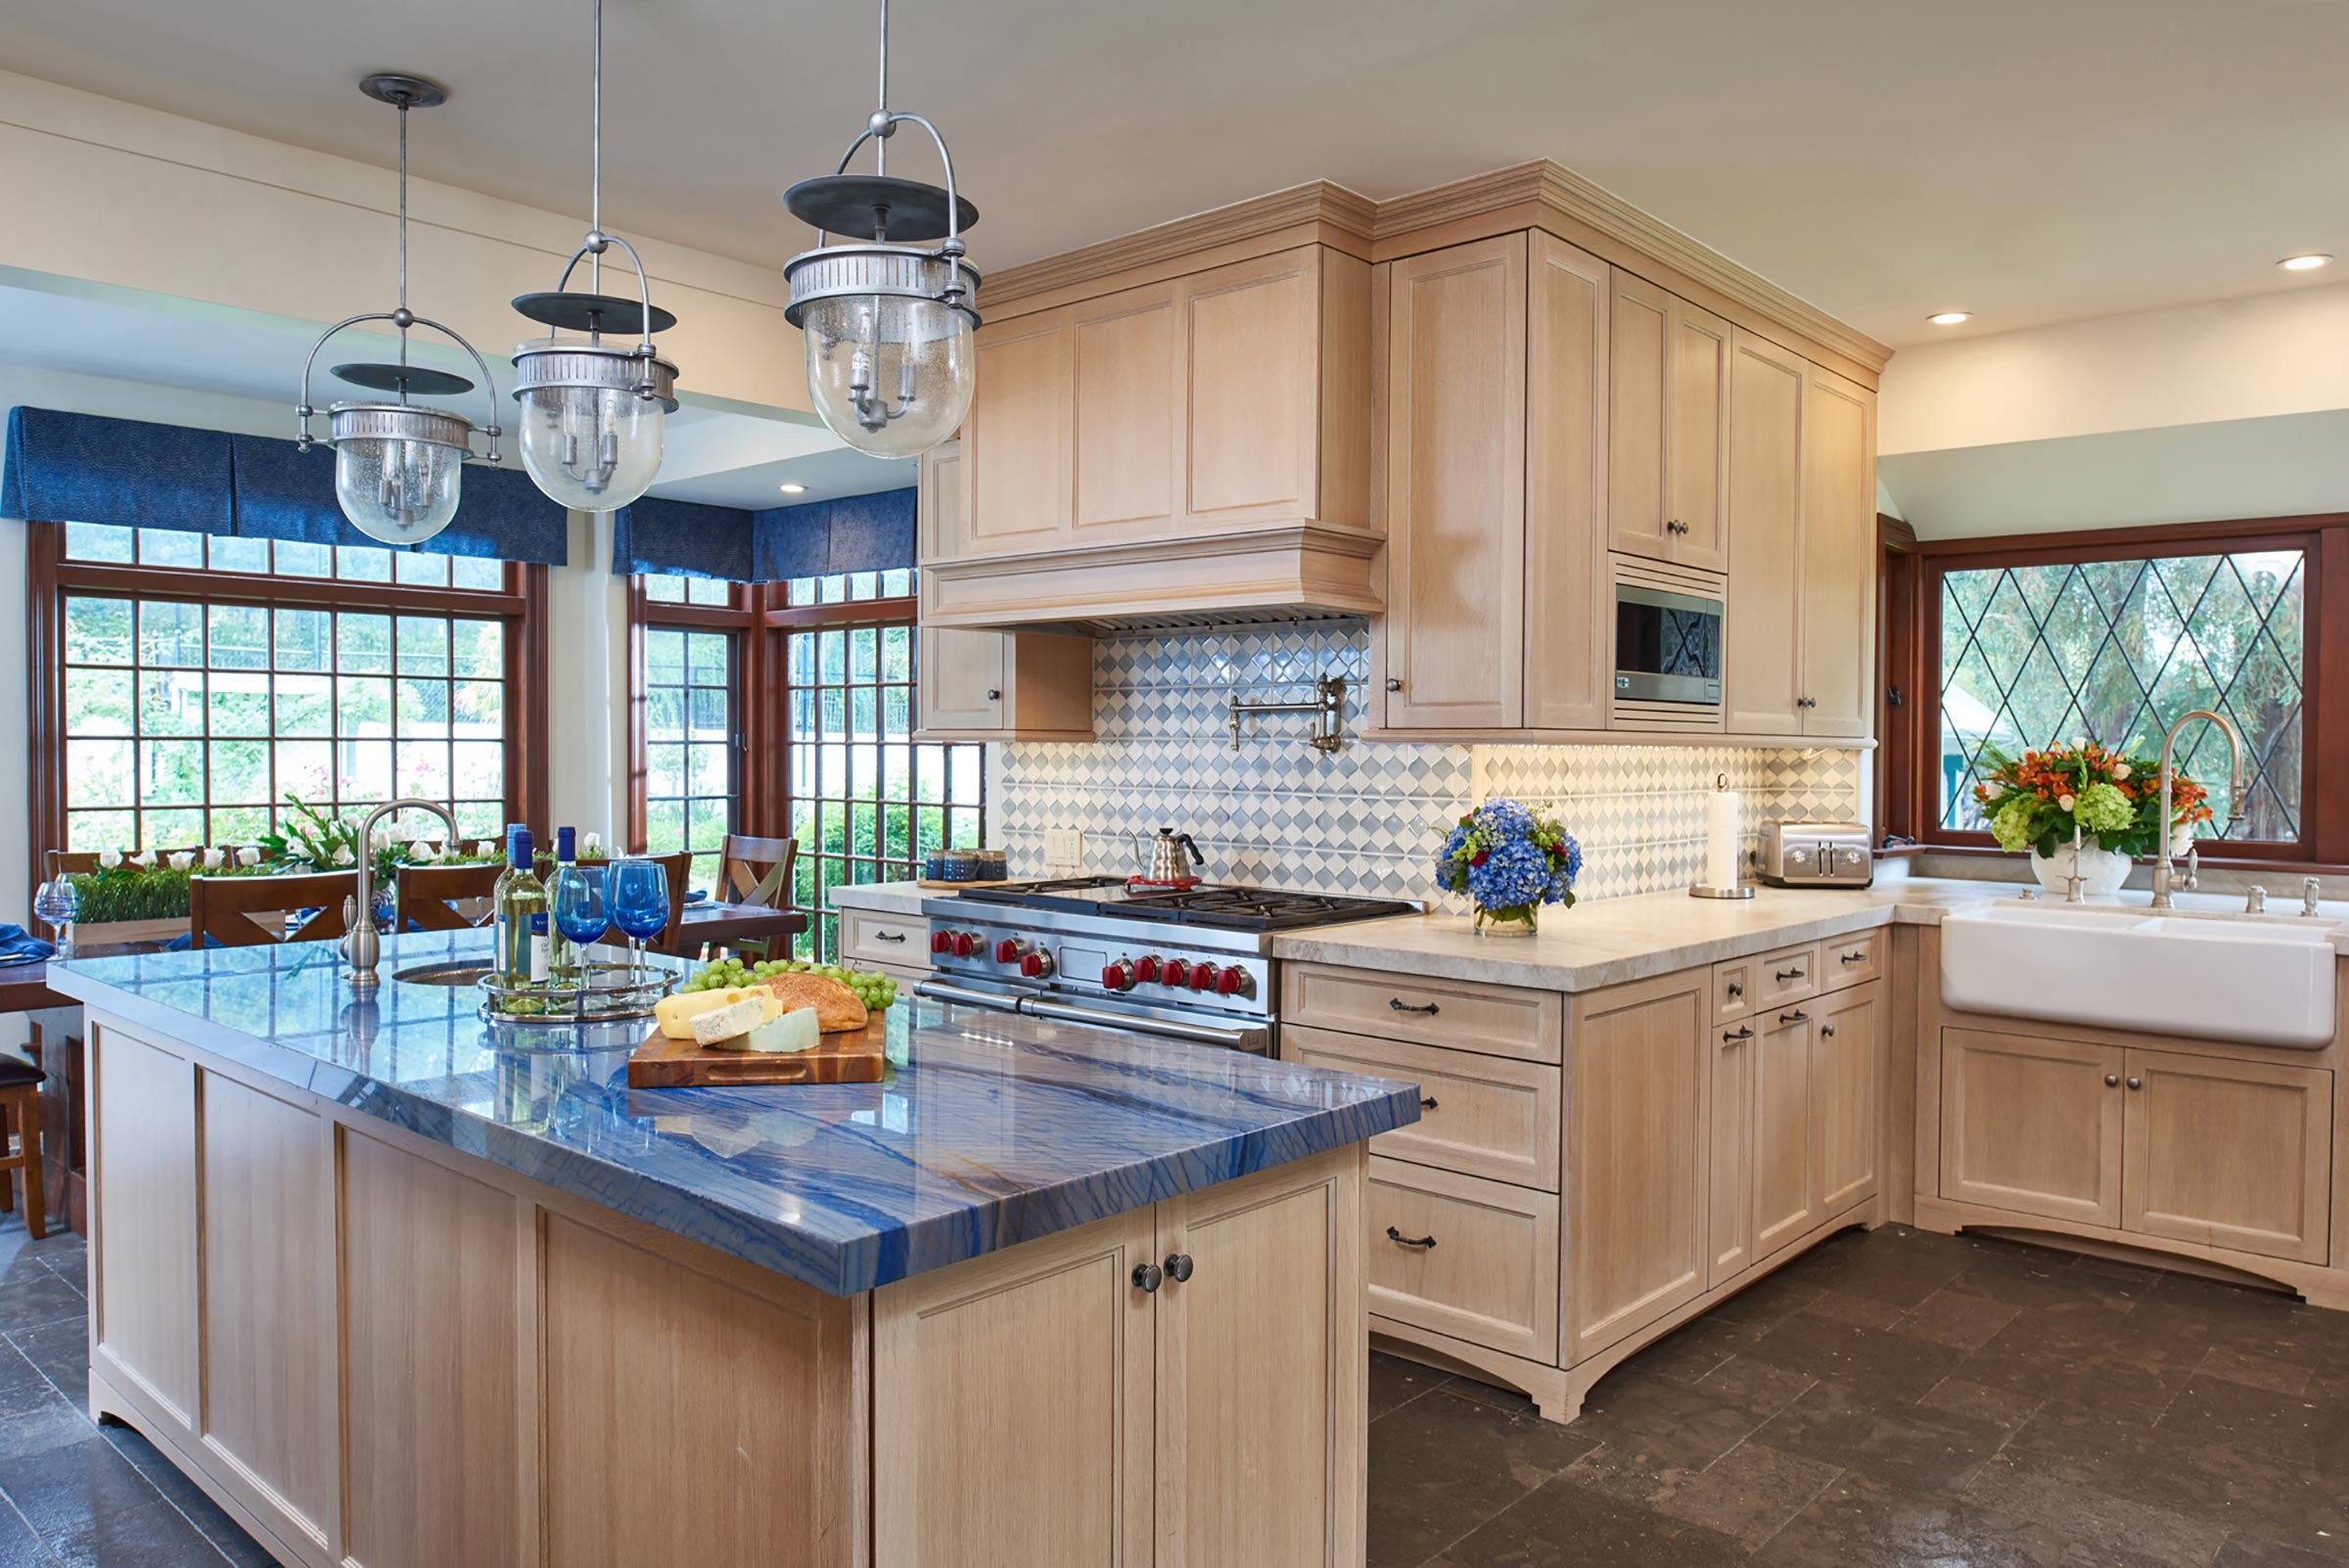 Transitional Kitchen Design Remodel by Cynthia Bennett ...